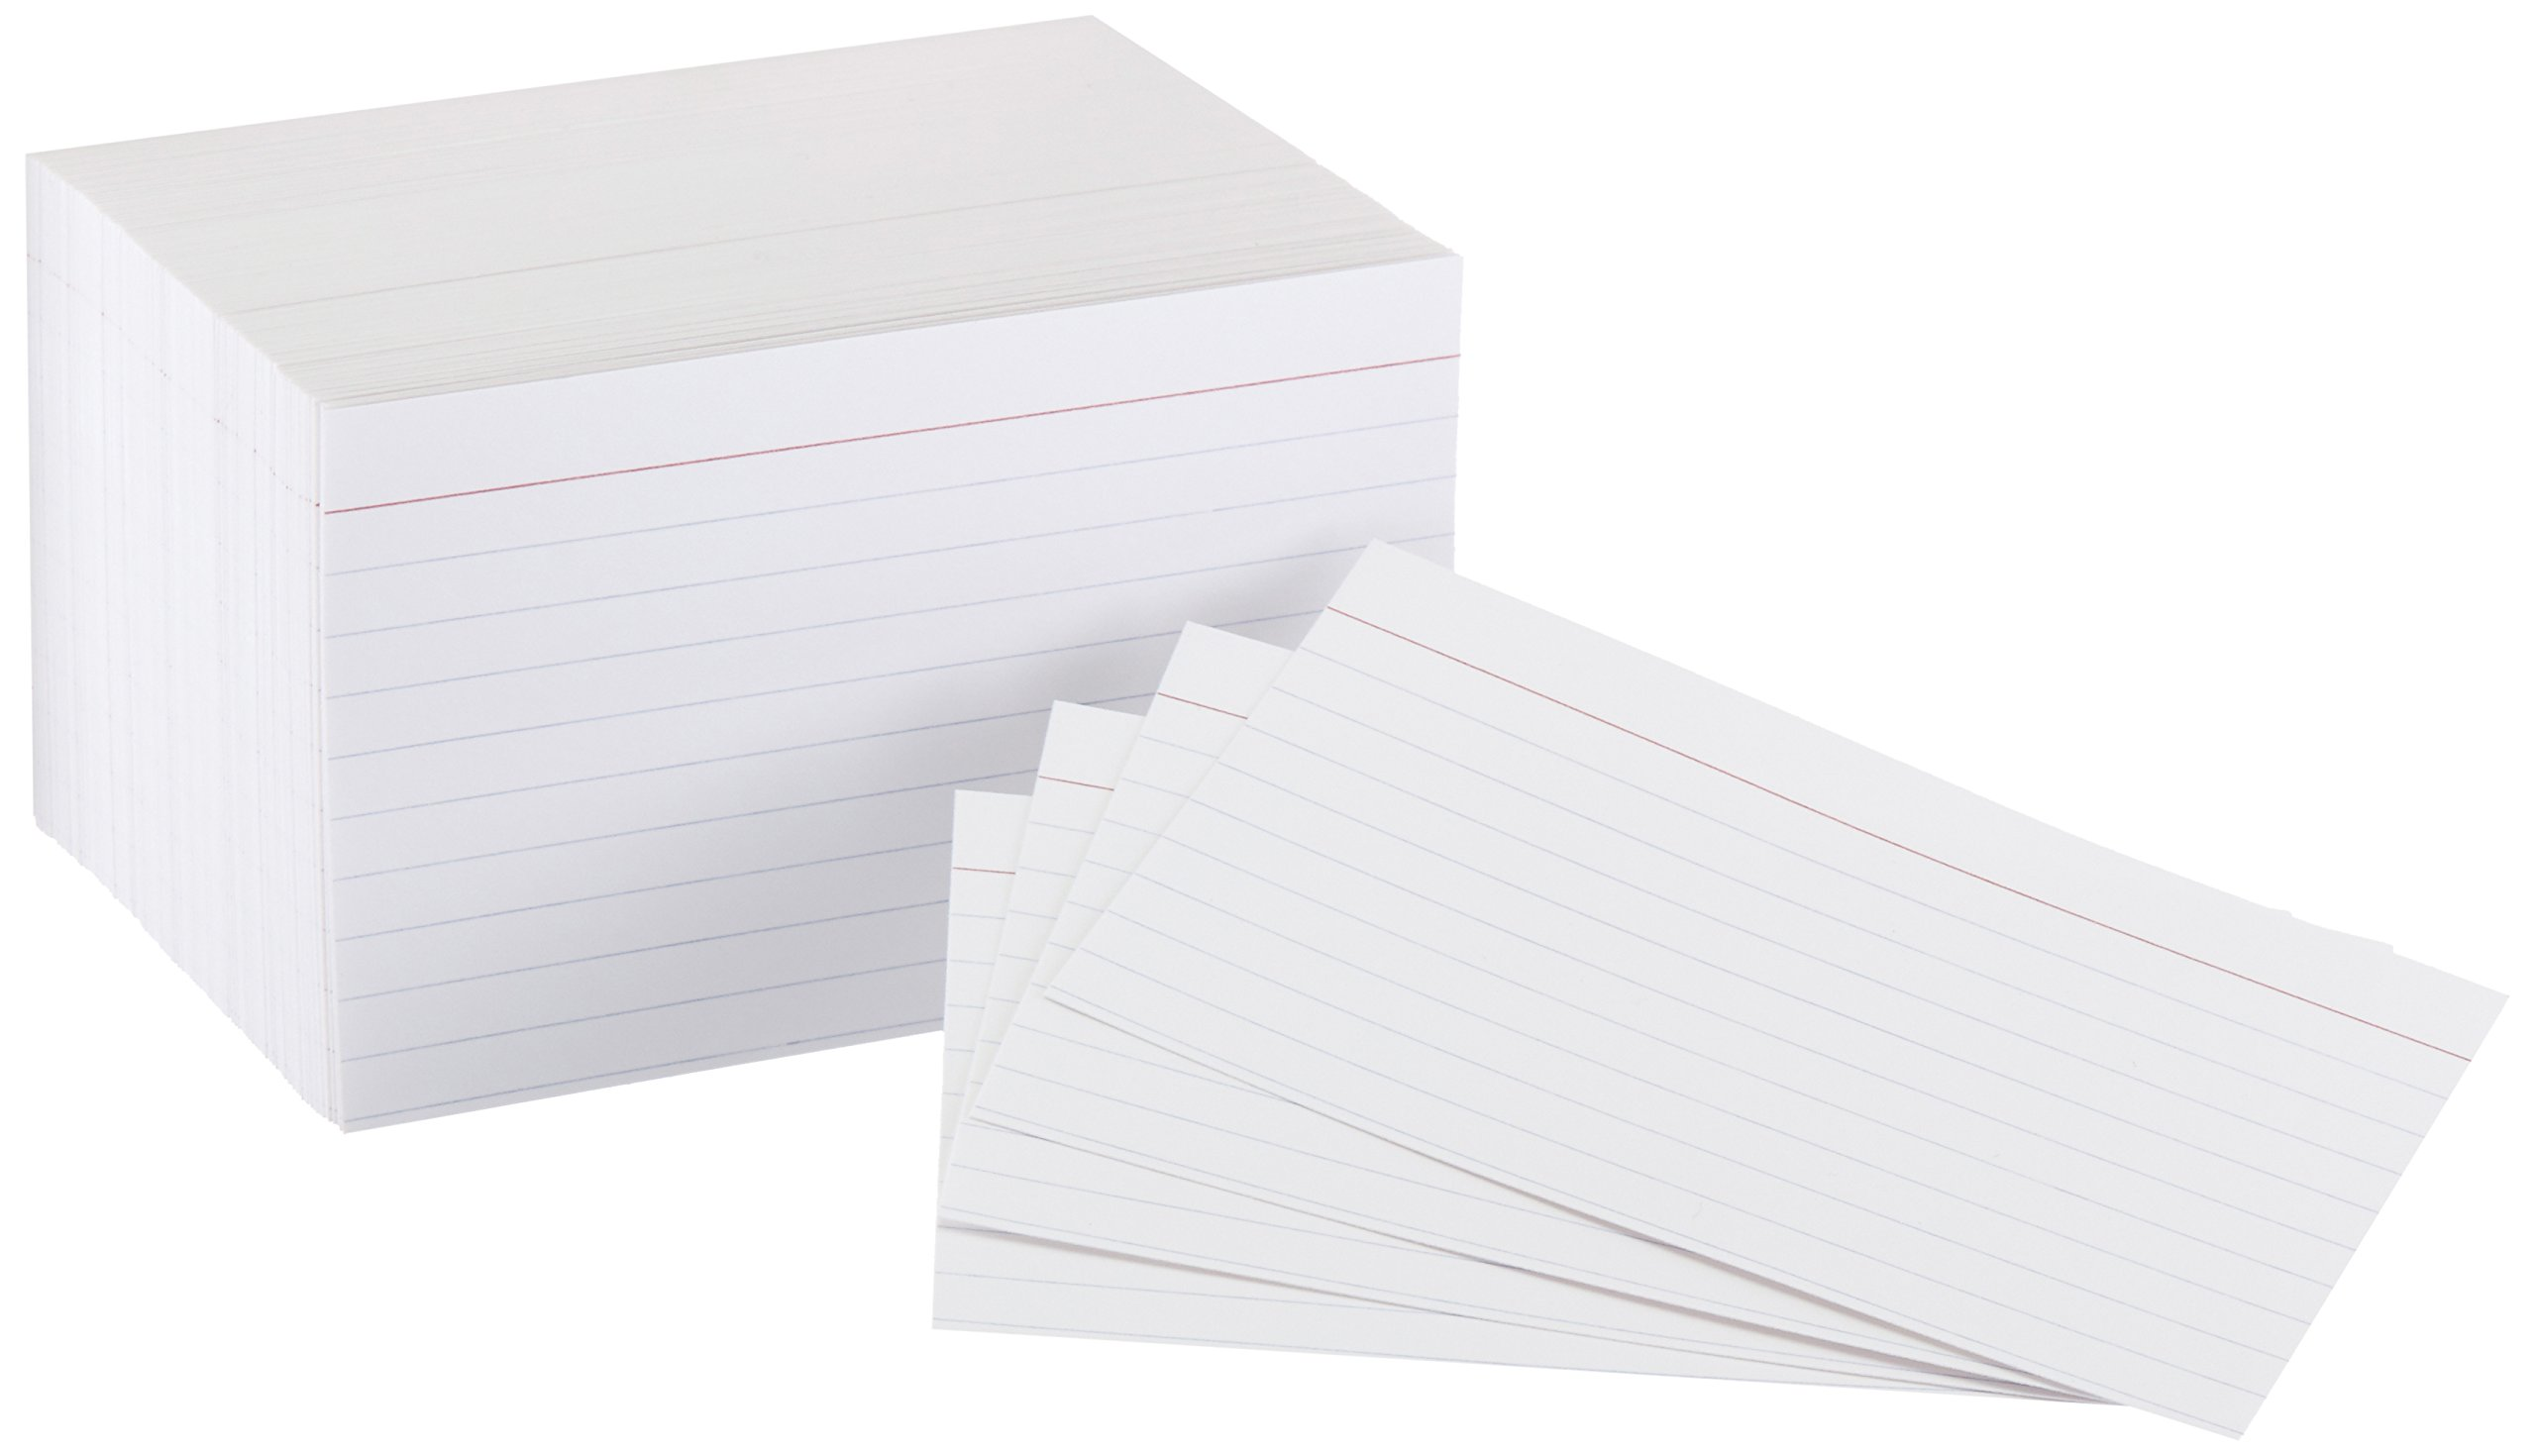 AmazonBasics Heavy Weight Ruled Index Cards, White, 3x5-Inch, 300-Count